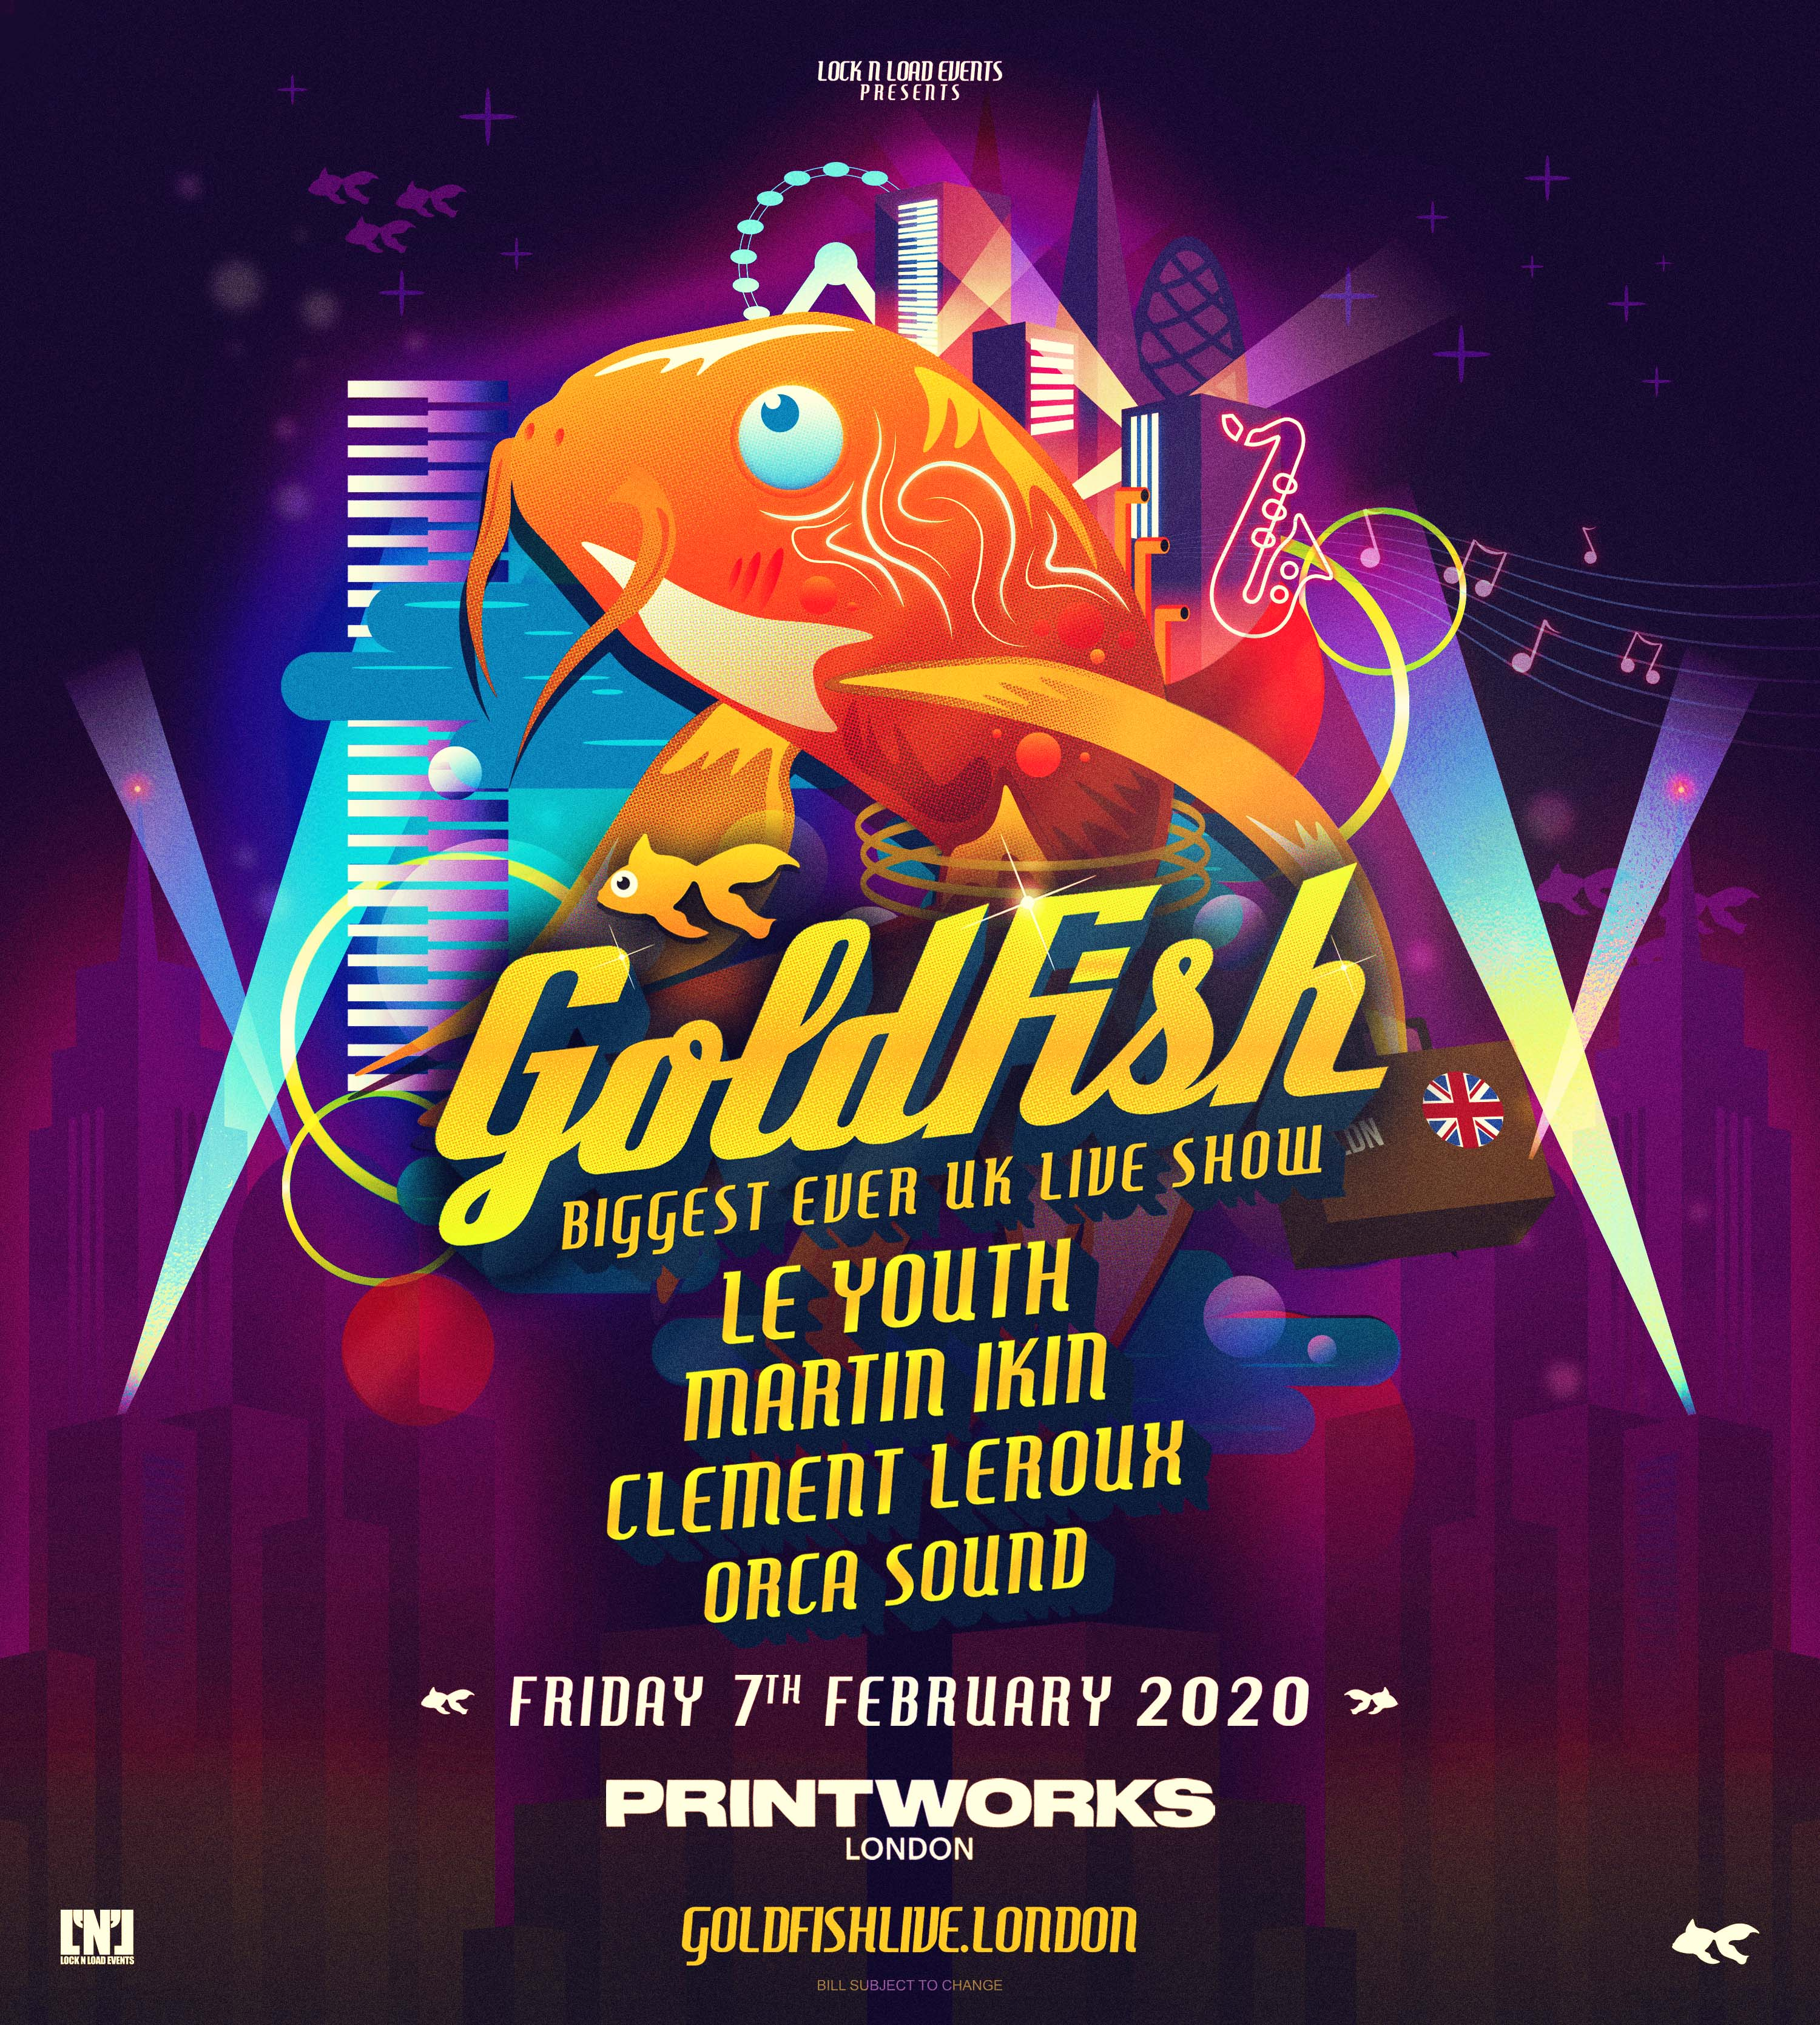 Lock 'n' Load Events Presents: Goldfish